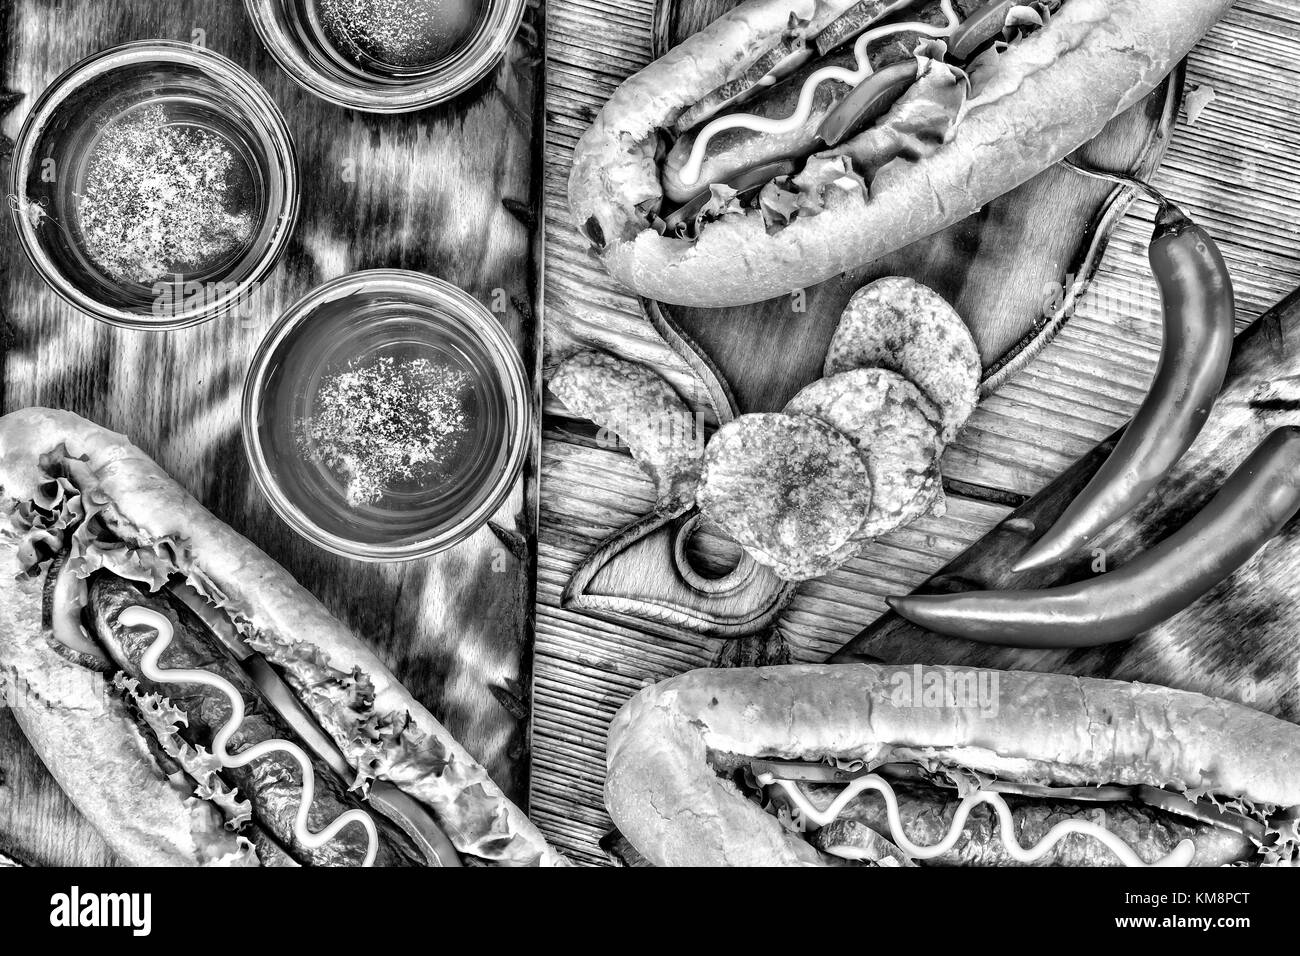 Black and white photo. Hot dogs, beer, chips on wooden table in the pub. - Stock Image